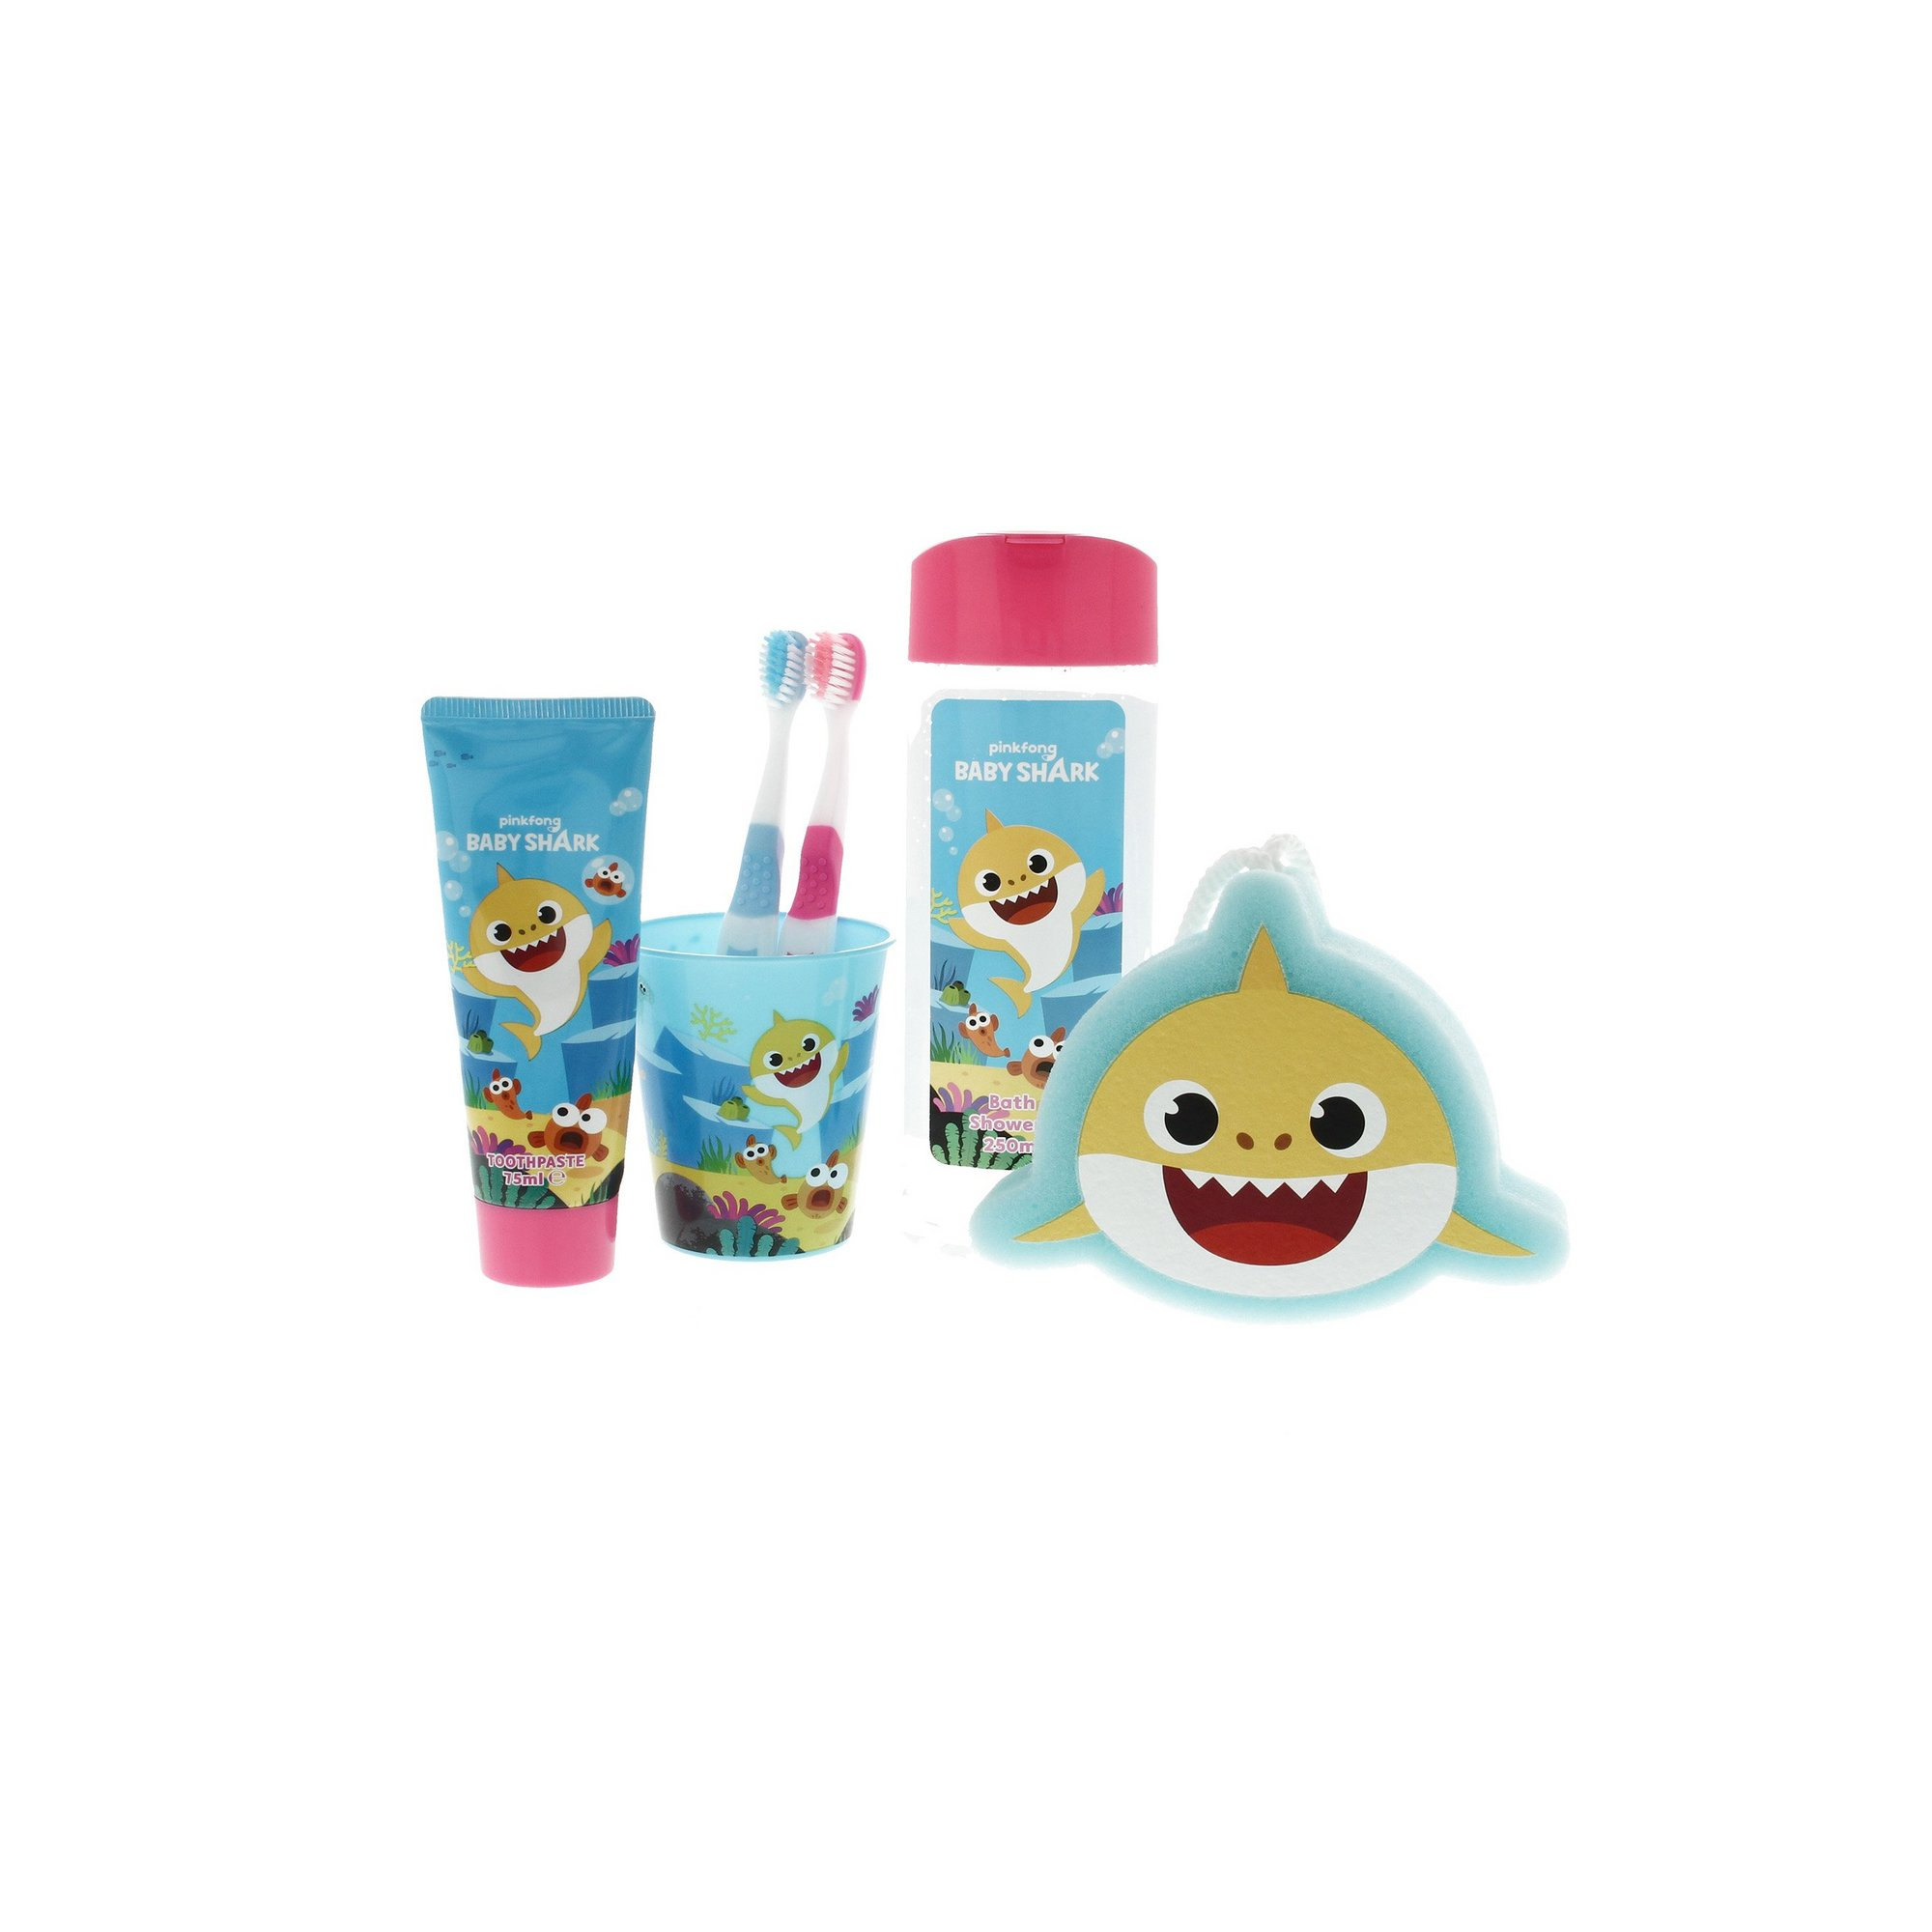 Image of Baby Shark Bed Time Set